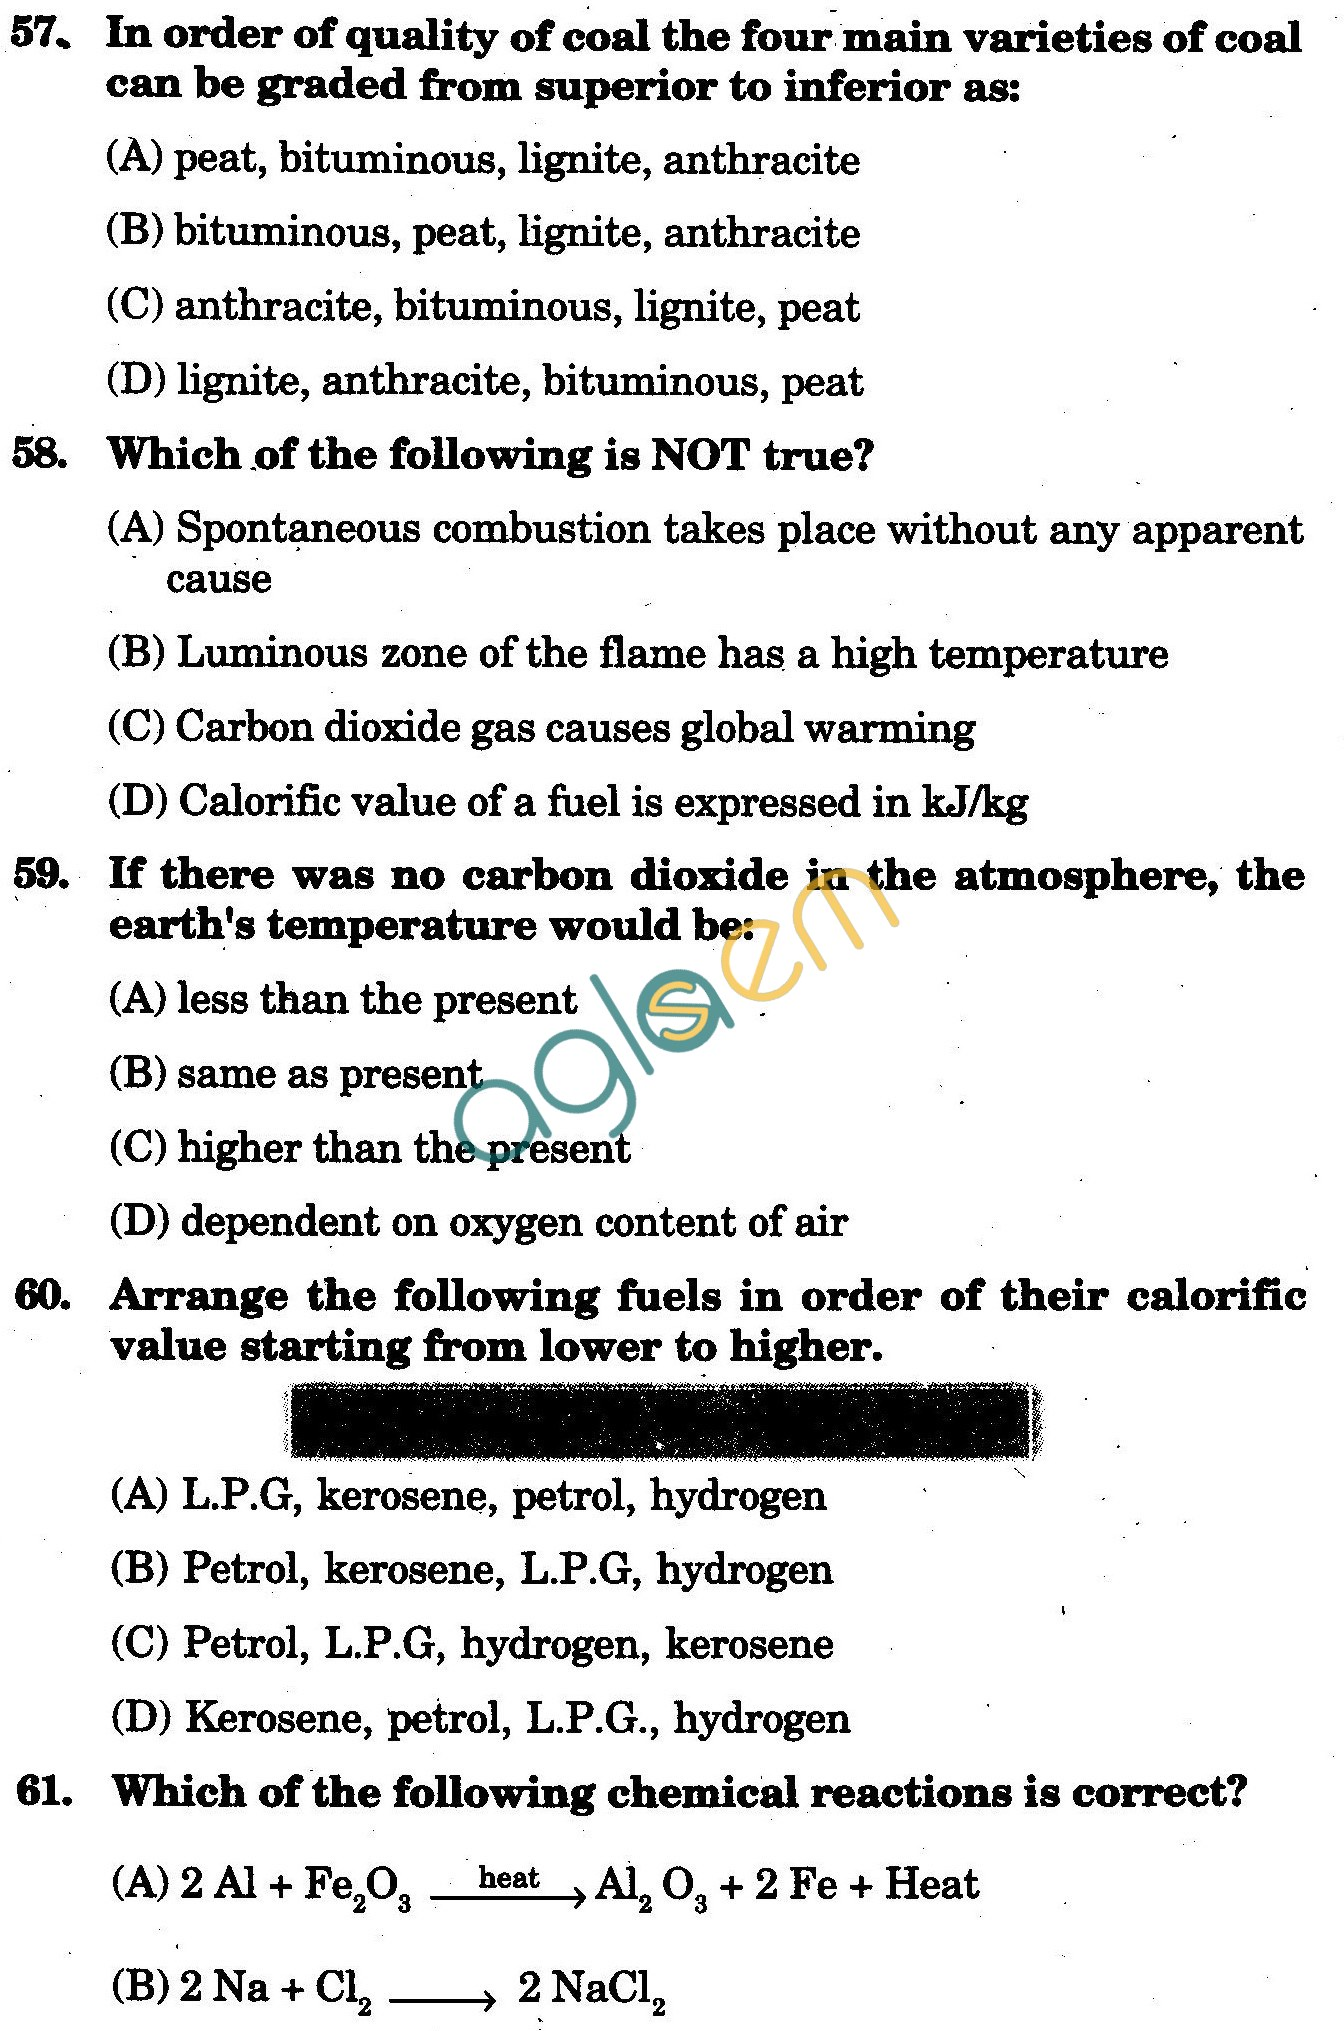 NSTSE 2009 Class VIII Question Paper with Answers - Chemistry